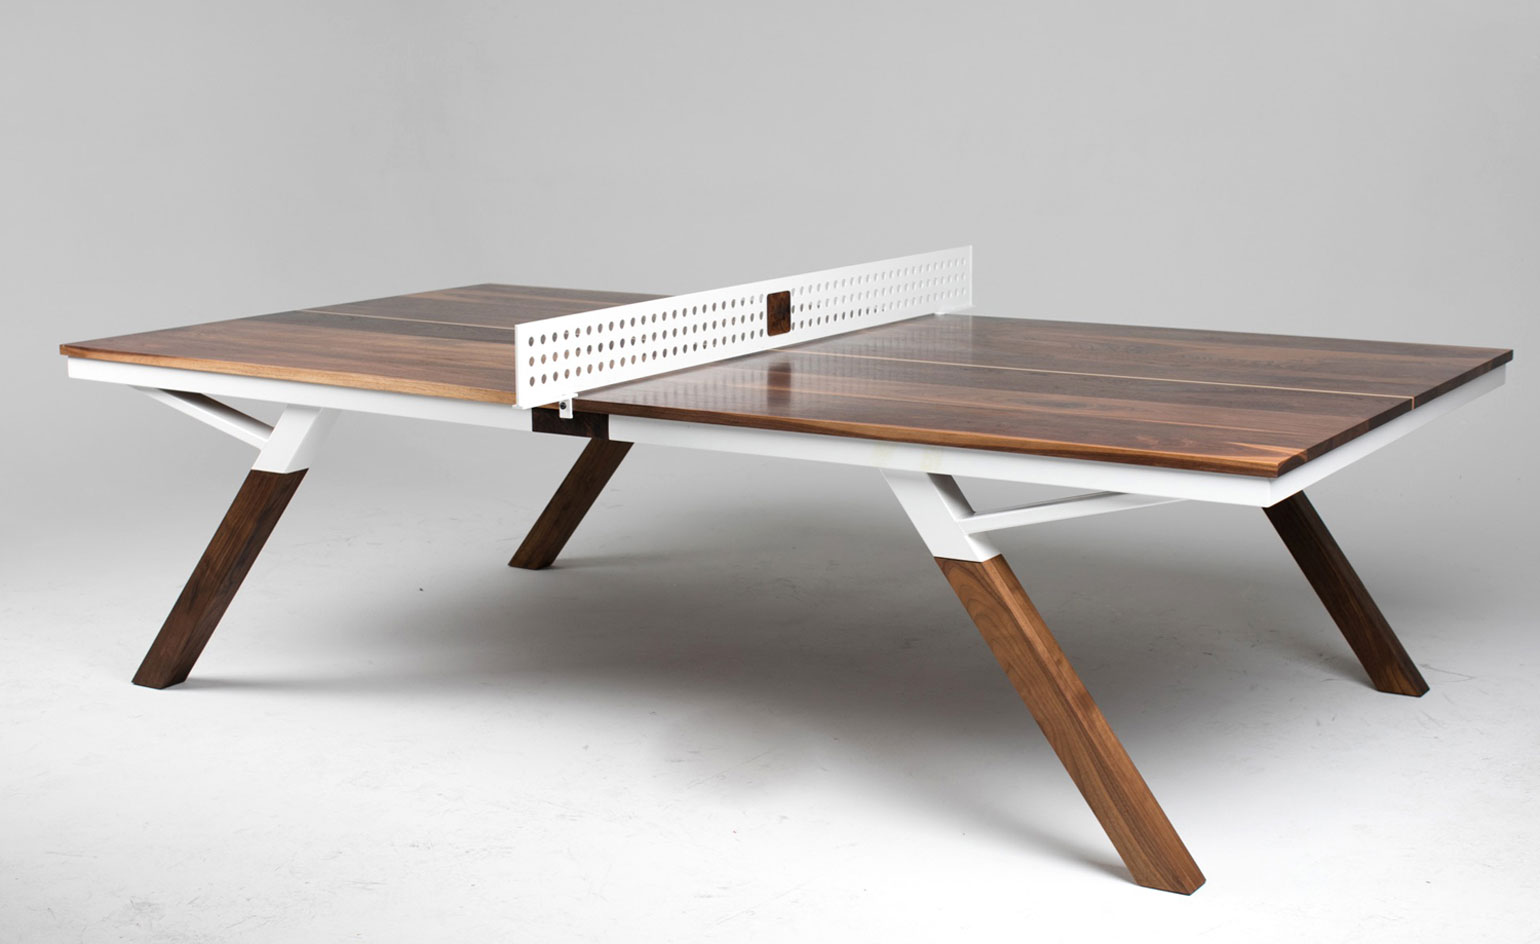 Charmant Bouncing Around: Rounding Up The Most Innovative Ping Pong Table Designs |  Wallpaper*